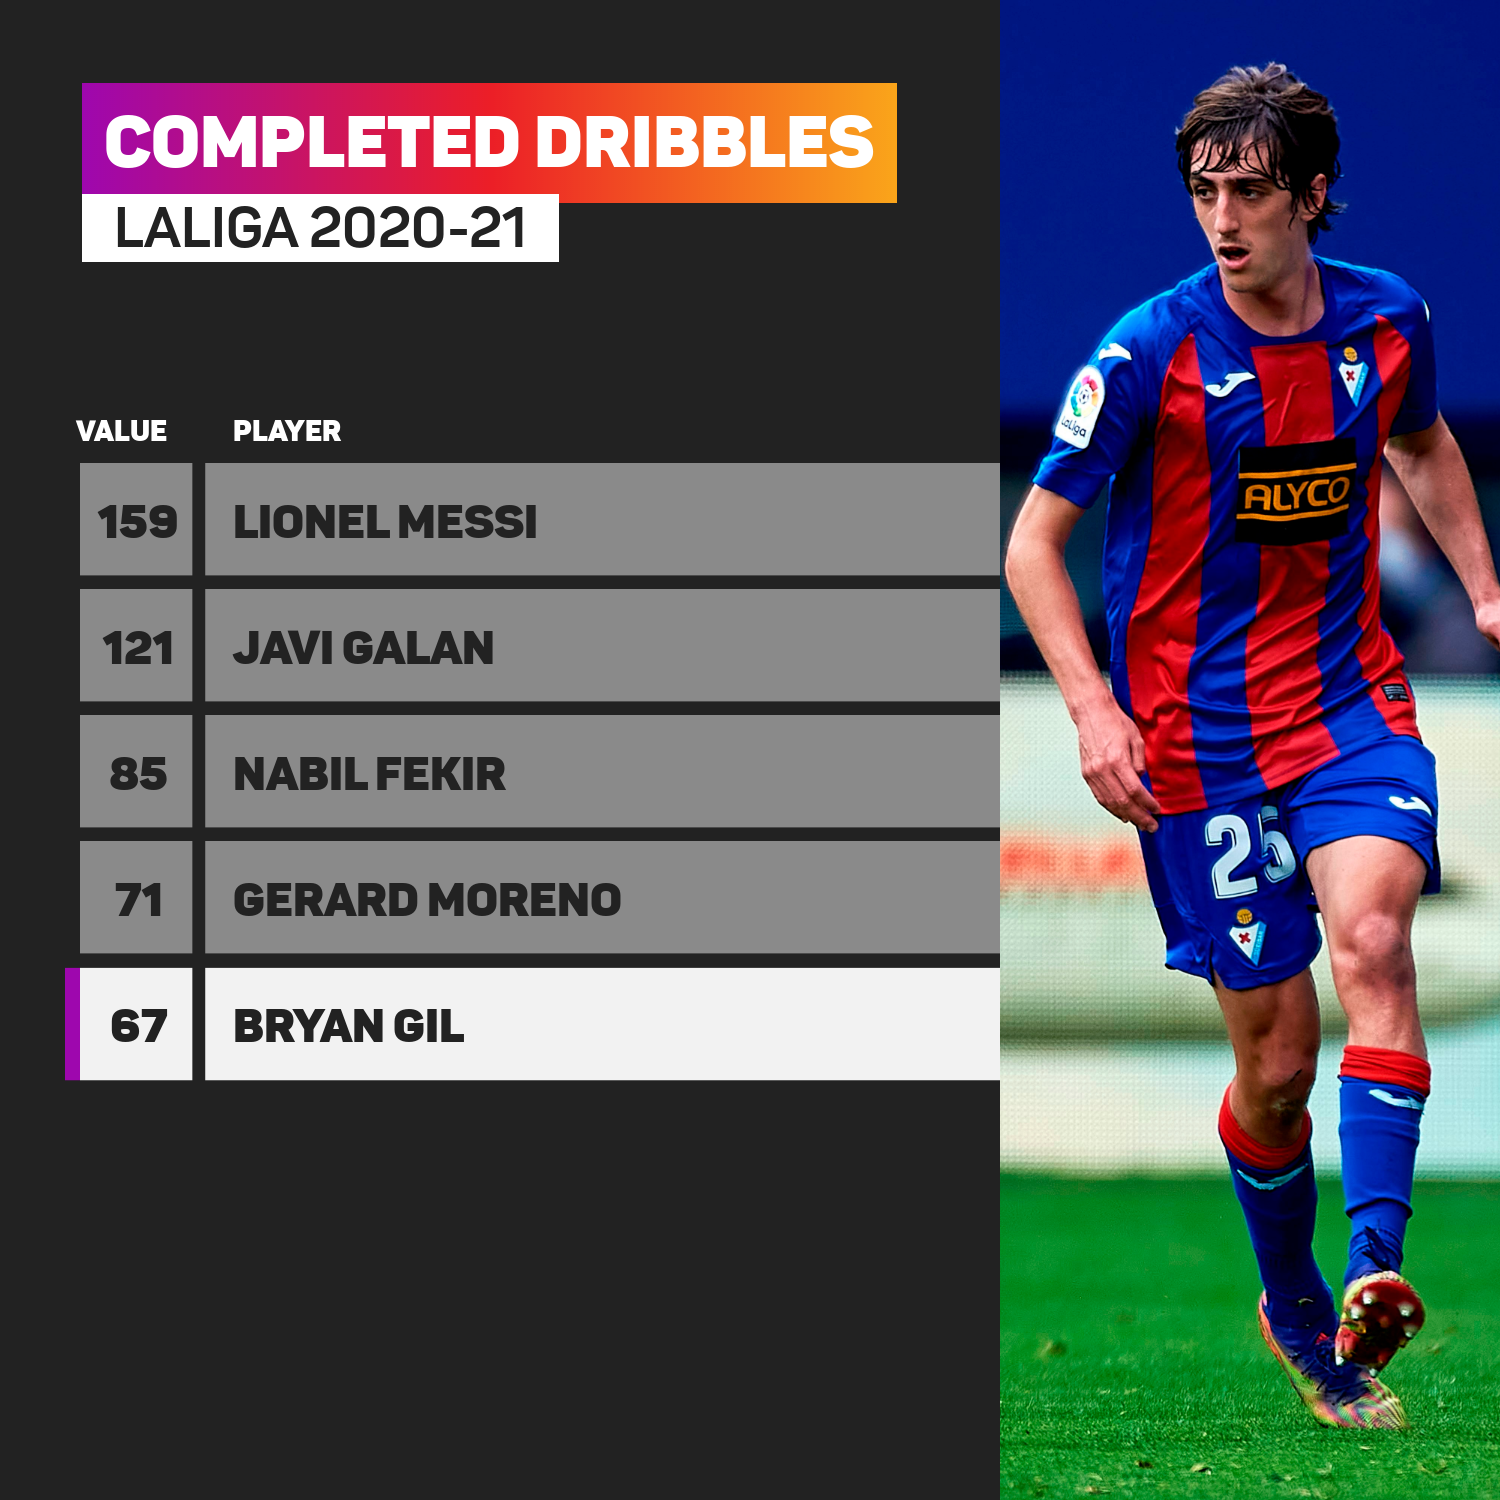 Bryan Gil ranks highly for completed dribbles